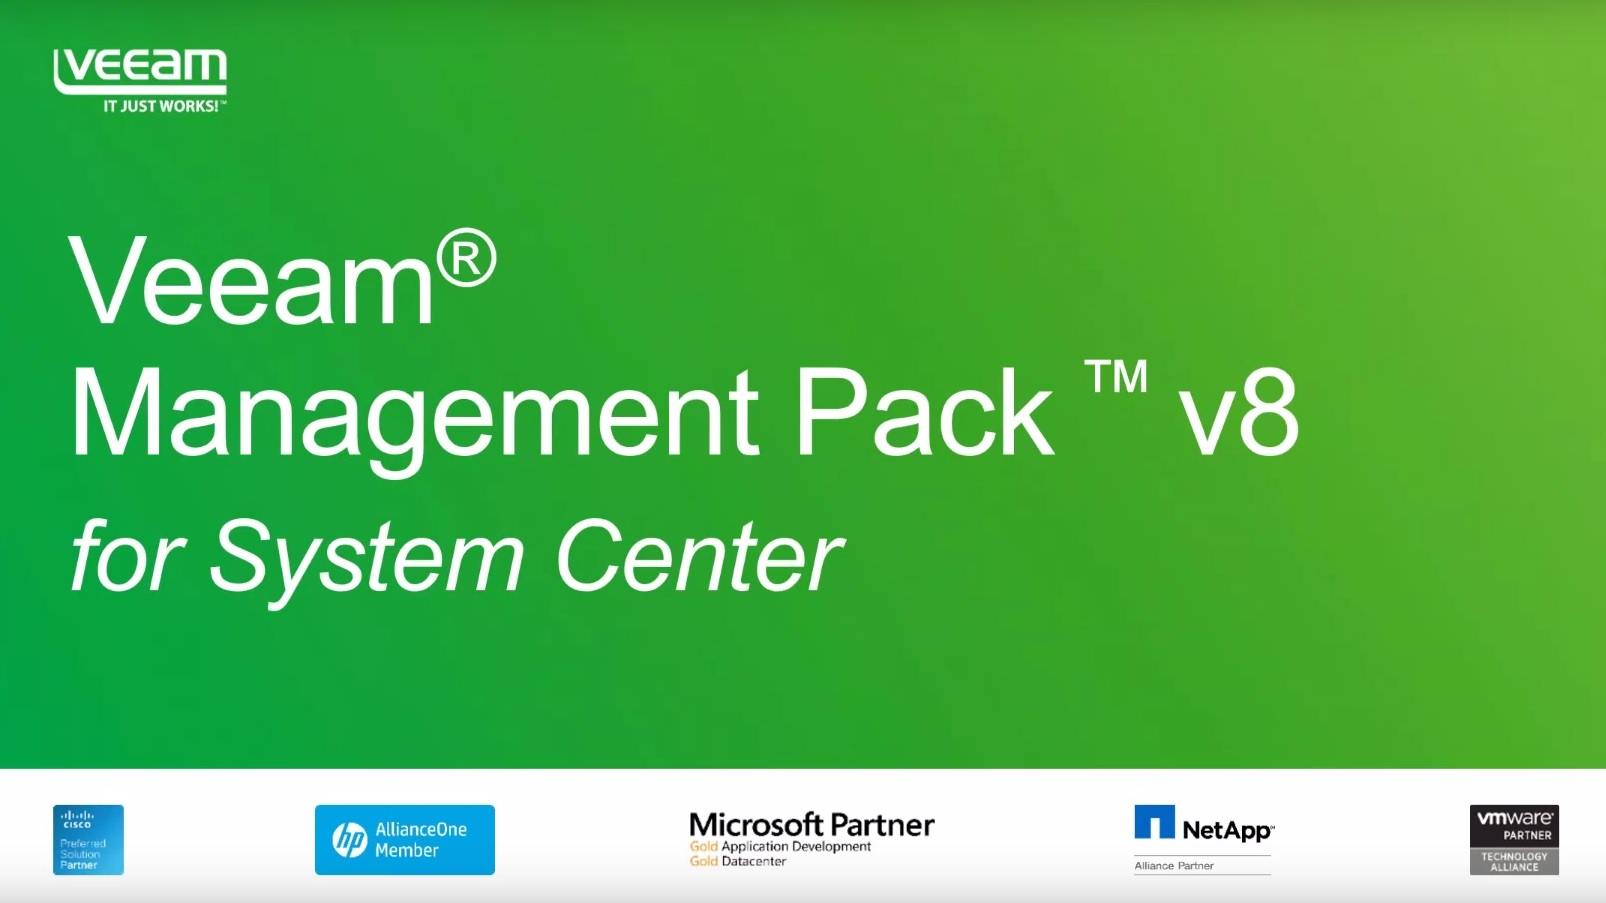 NEW Veeam Management Pack v8: Unleash the power of System Center for vSphere & Hyper-V